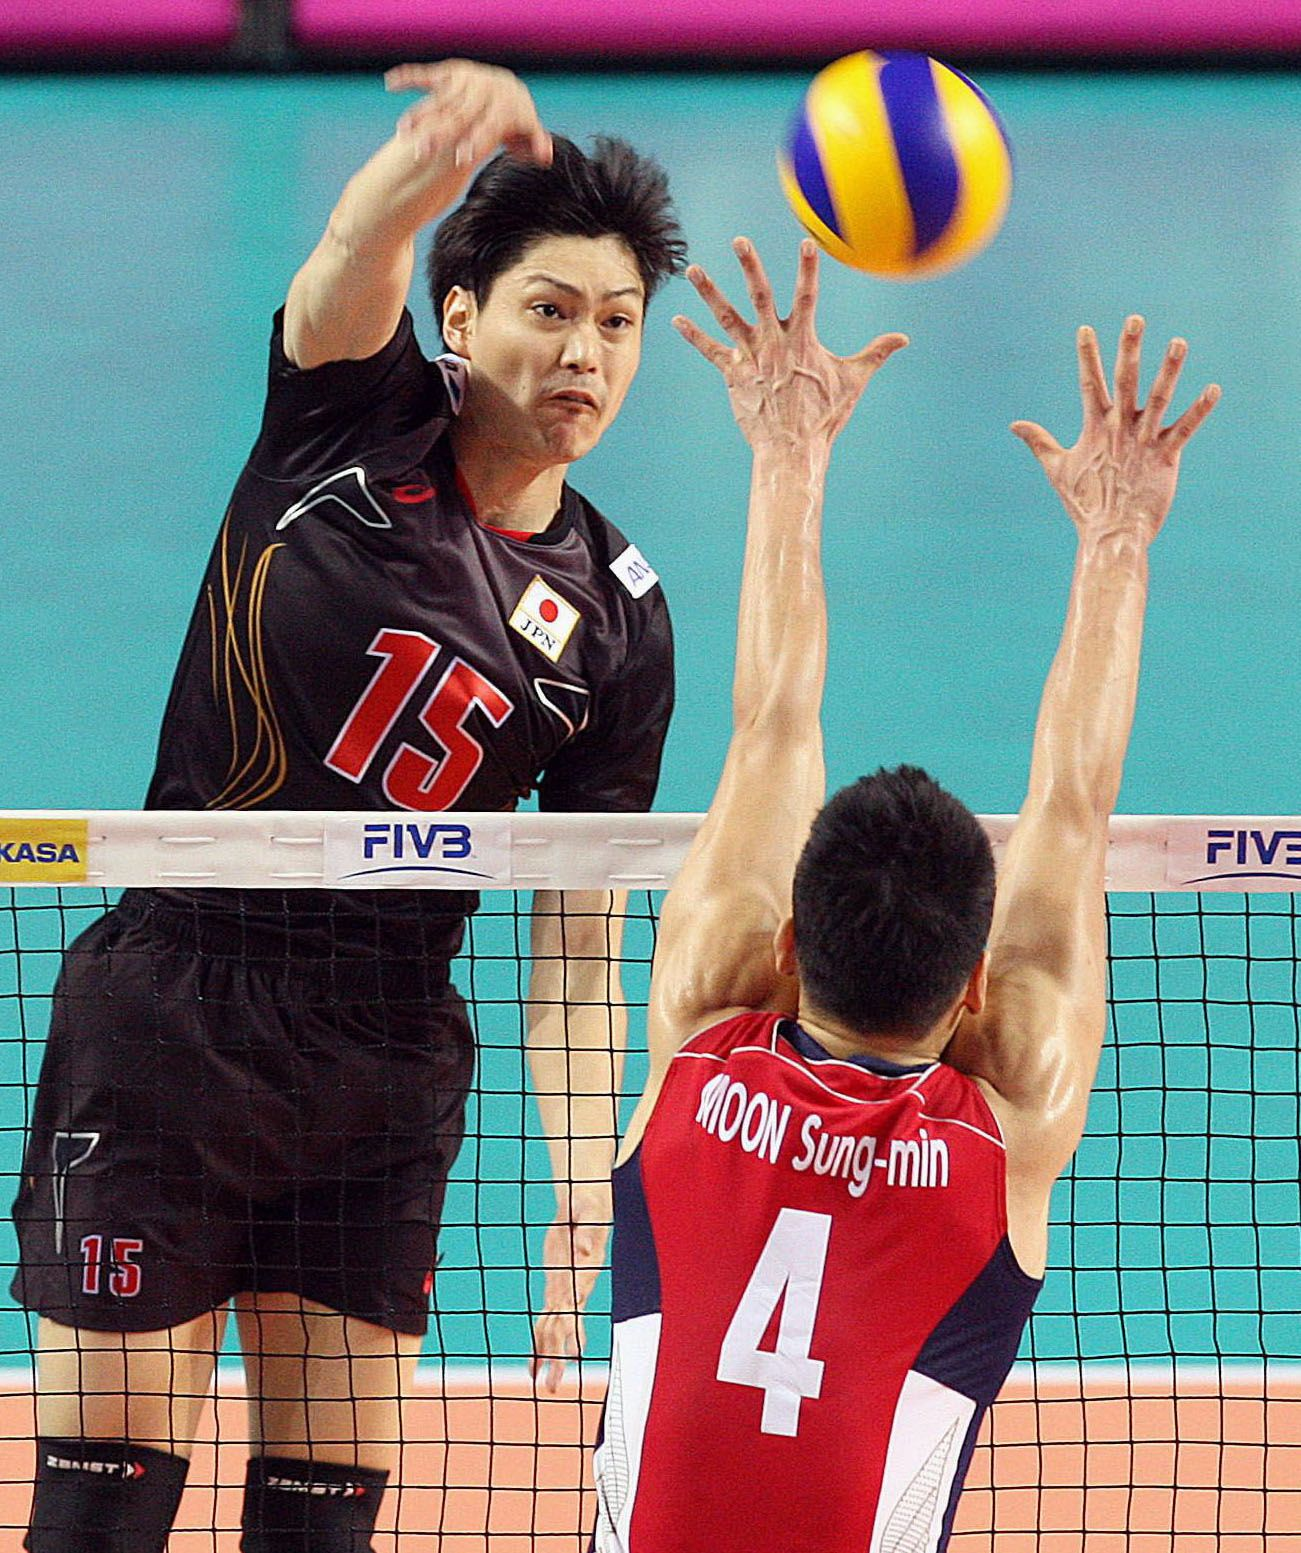 Pin By Online Betting Korea On Volleyball Betting Women Volleyball Volleyball Women